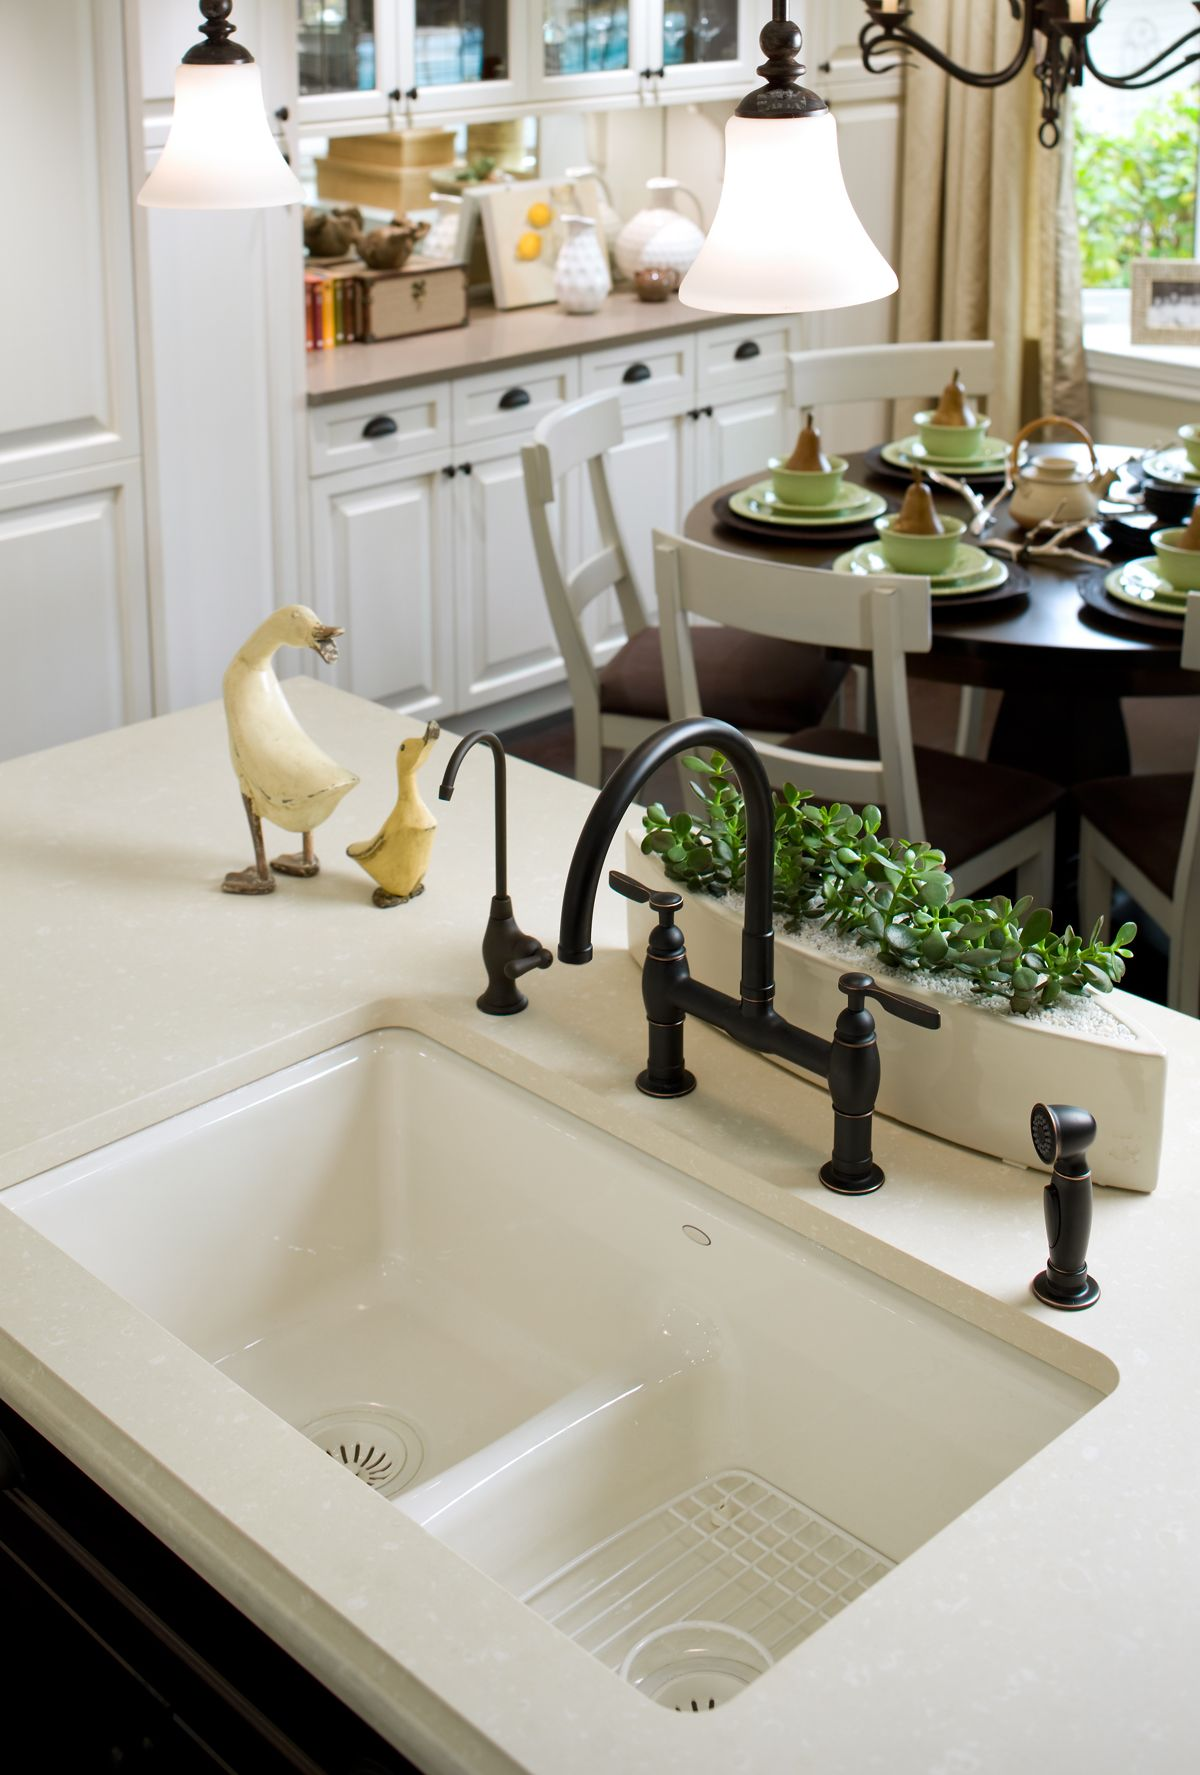 Details Give This Kitchen A Sense Of History That Is True To The